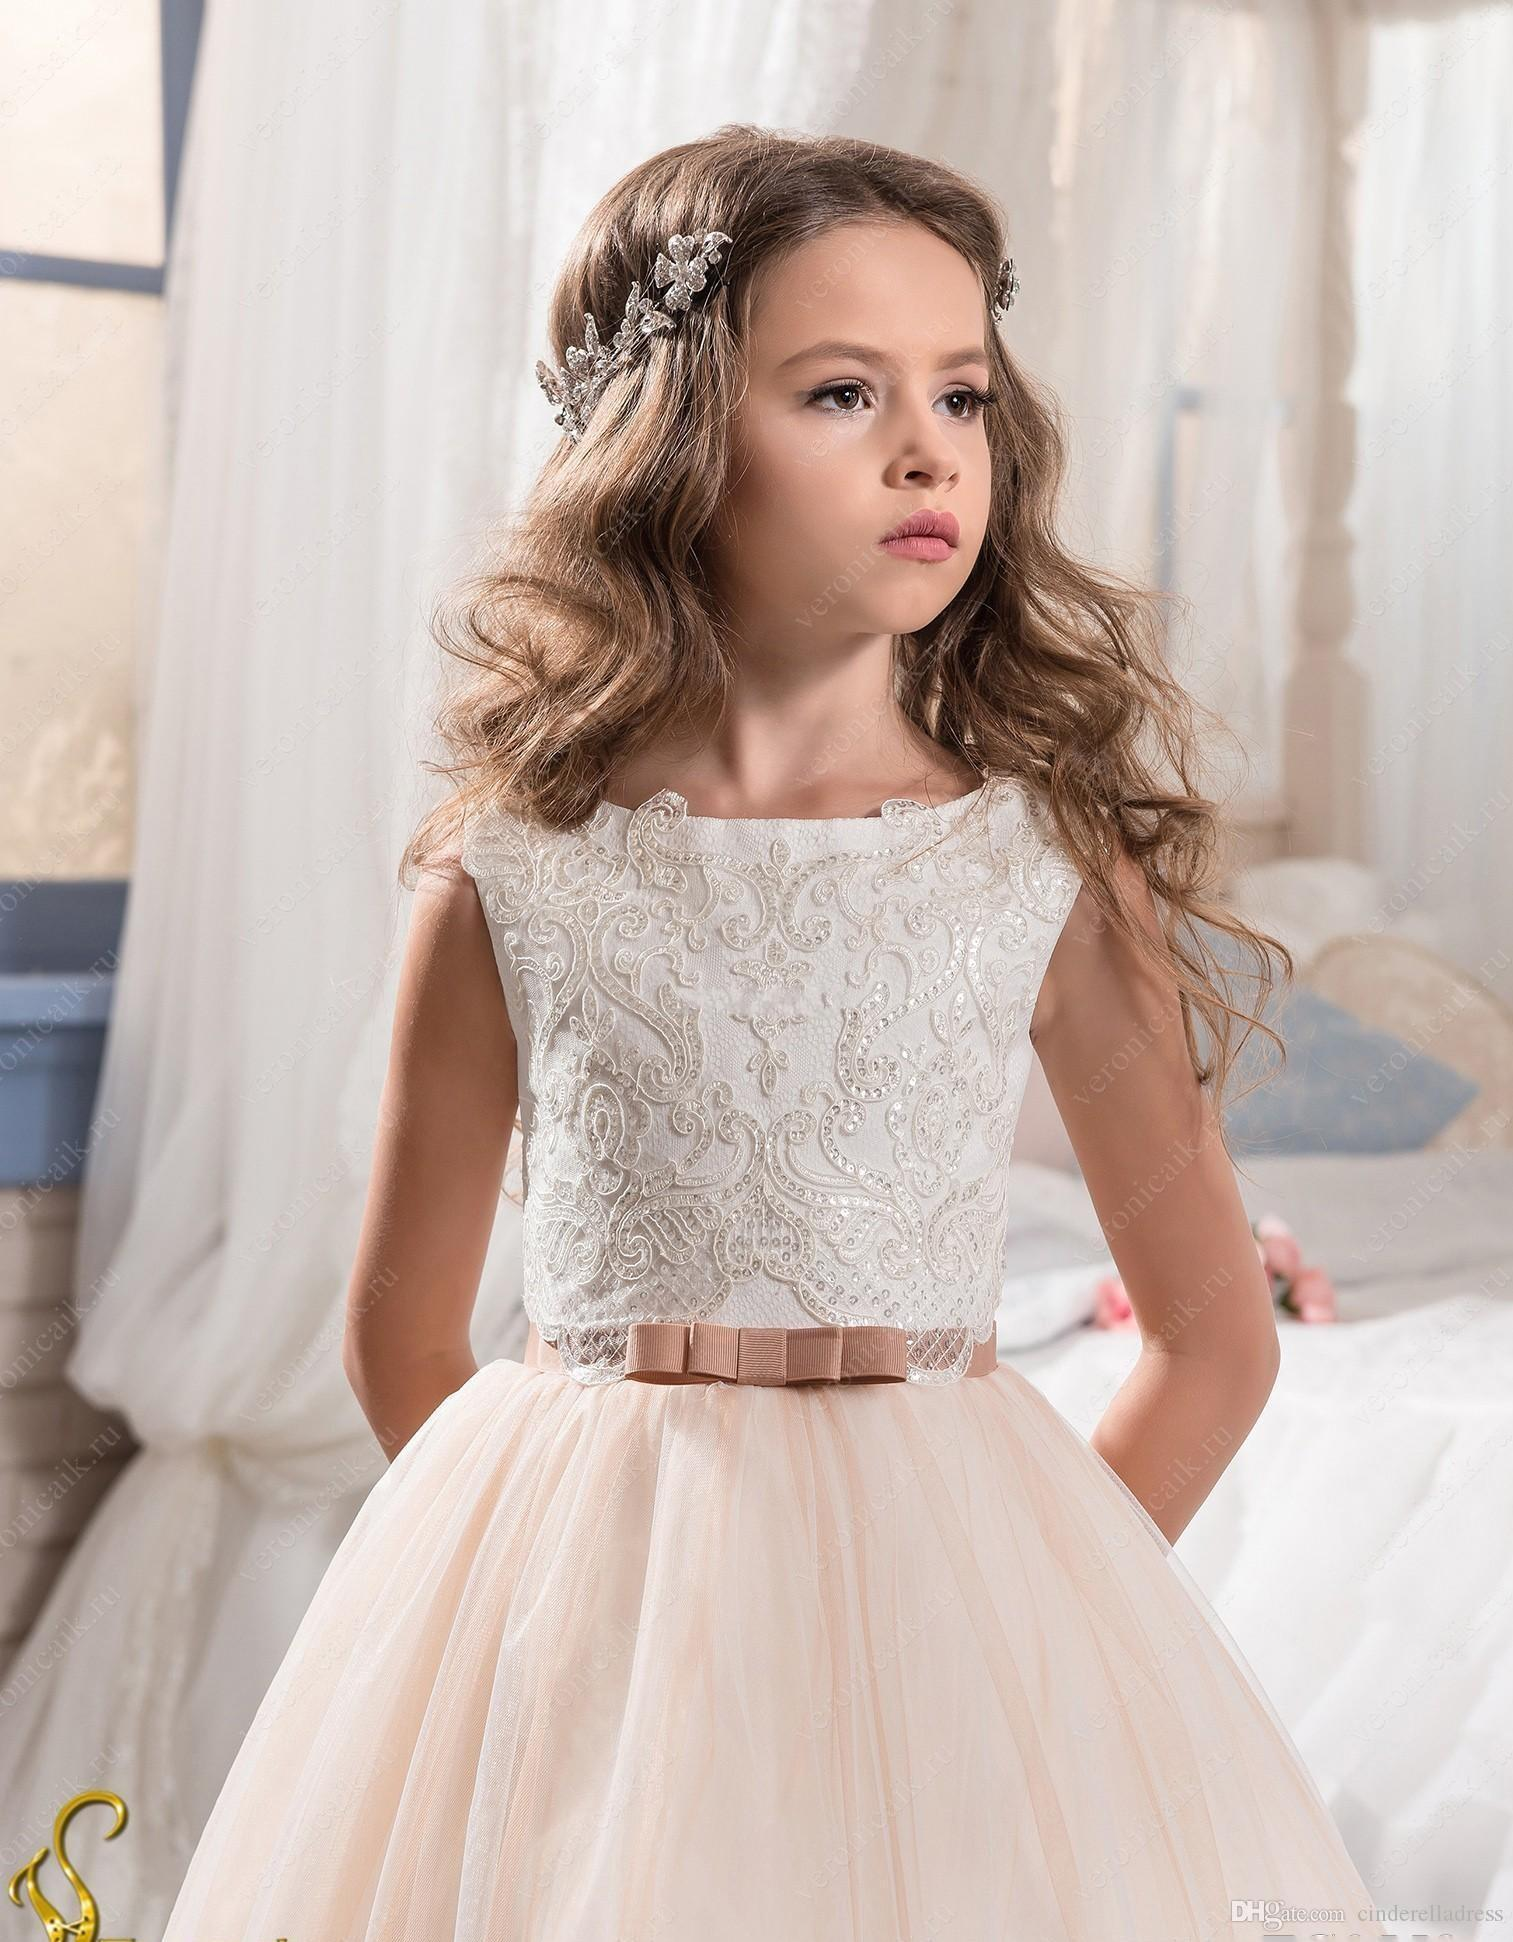 2019 Vintage Flower Girl Dresses For Weddings Blush Pink Custom Made Princess Tutu Sequined Appliqued Lace Bow Kids First Communion Gowns